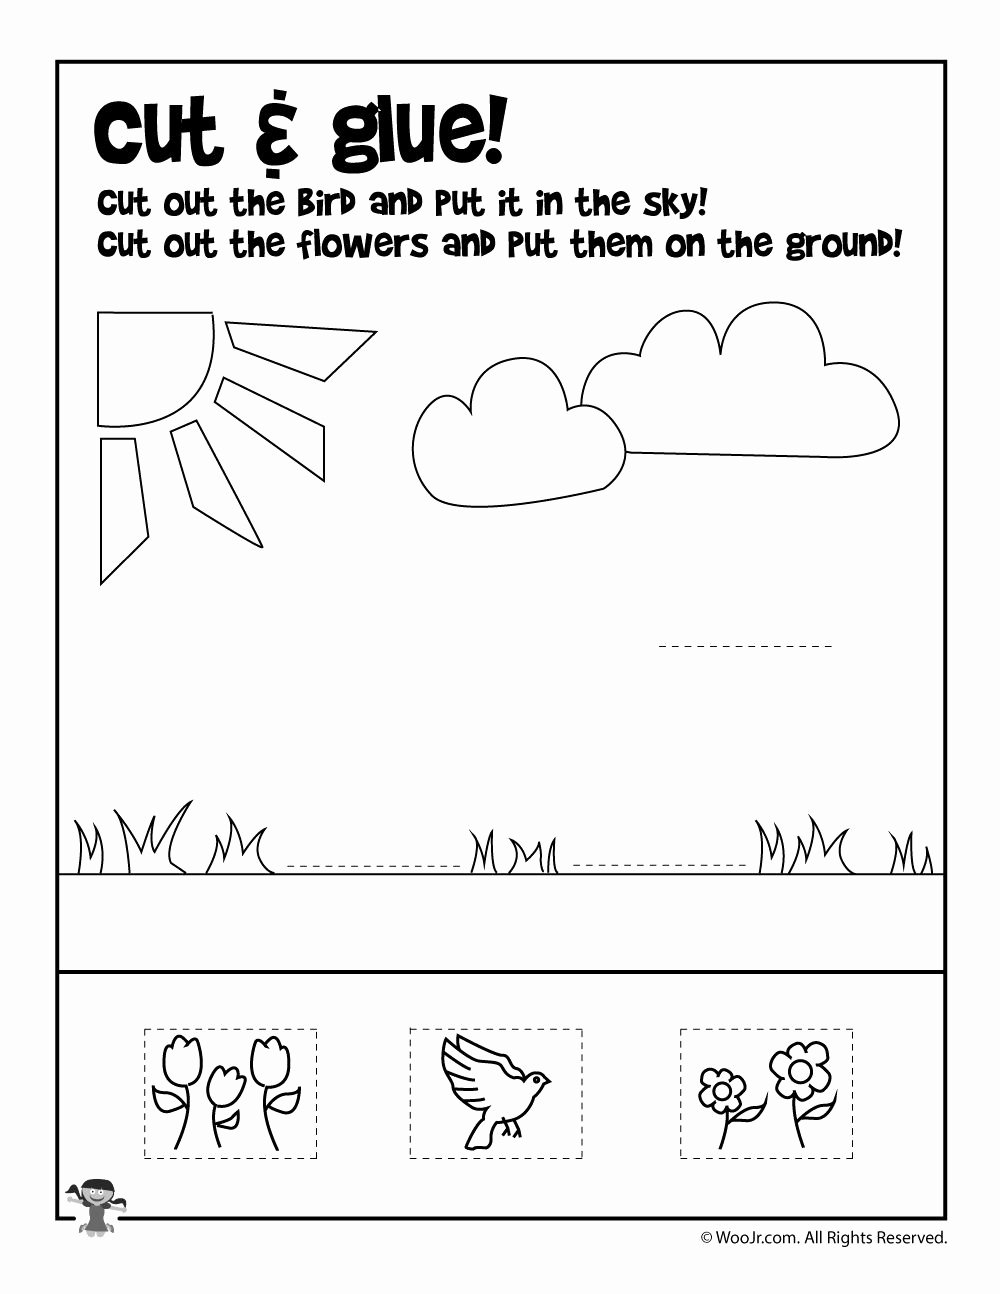 Preschool Cut and Paste Worksheets top Summer Preschool Worksheets Cut and Glue Free Math Telling